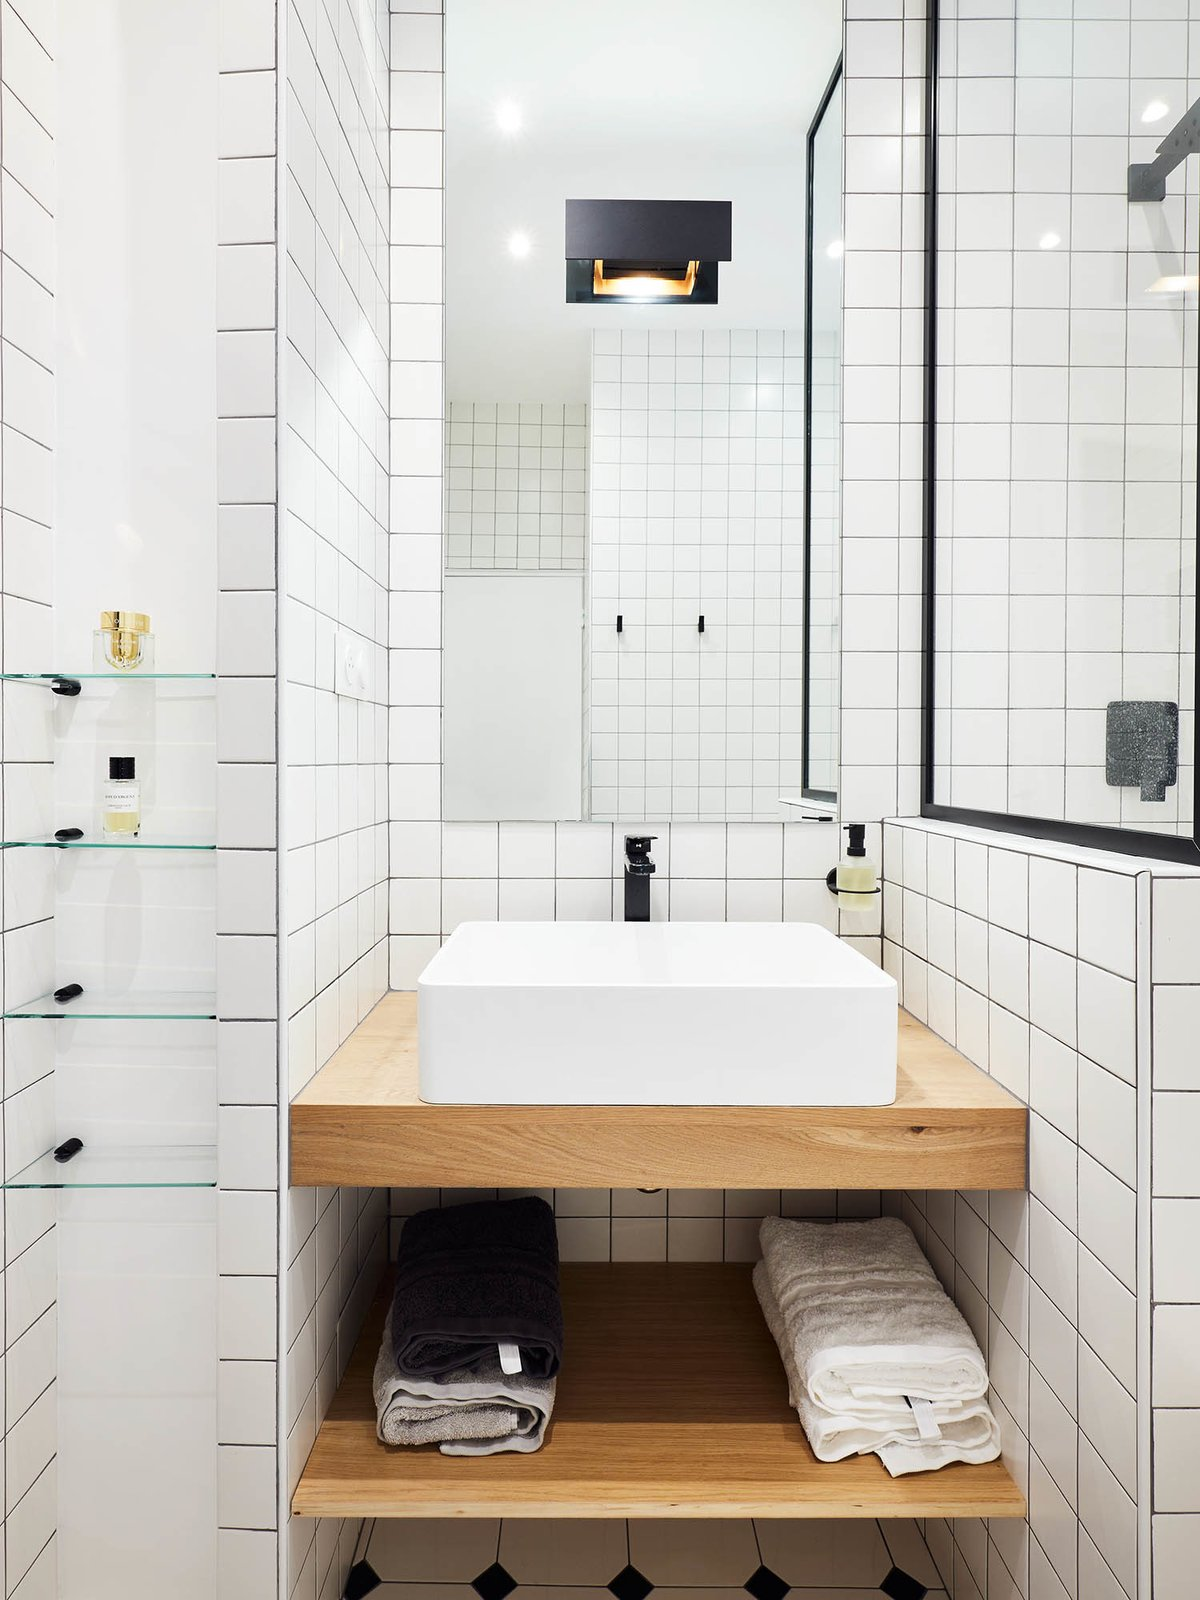 """Bath Room, Wood Counter, Vessel Sink, Corner Shower, Porcelain Tile Wall, Wall Lighting, Porcelain Tile Floor, and Alcove Tub """"I optimized every inch of space in the bathroom,"""" says Petillaut, who employed a black-and-white palette and geometric lines that make the room feel more voluminous.   Photo 7 of 11 in Budget Breakdown: A Muddled Parisian Pad Gets a Sleek Makeover for $117K"""